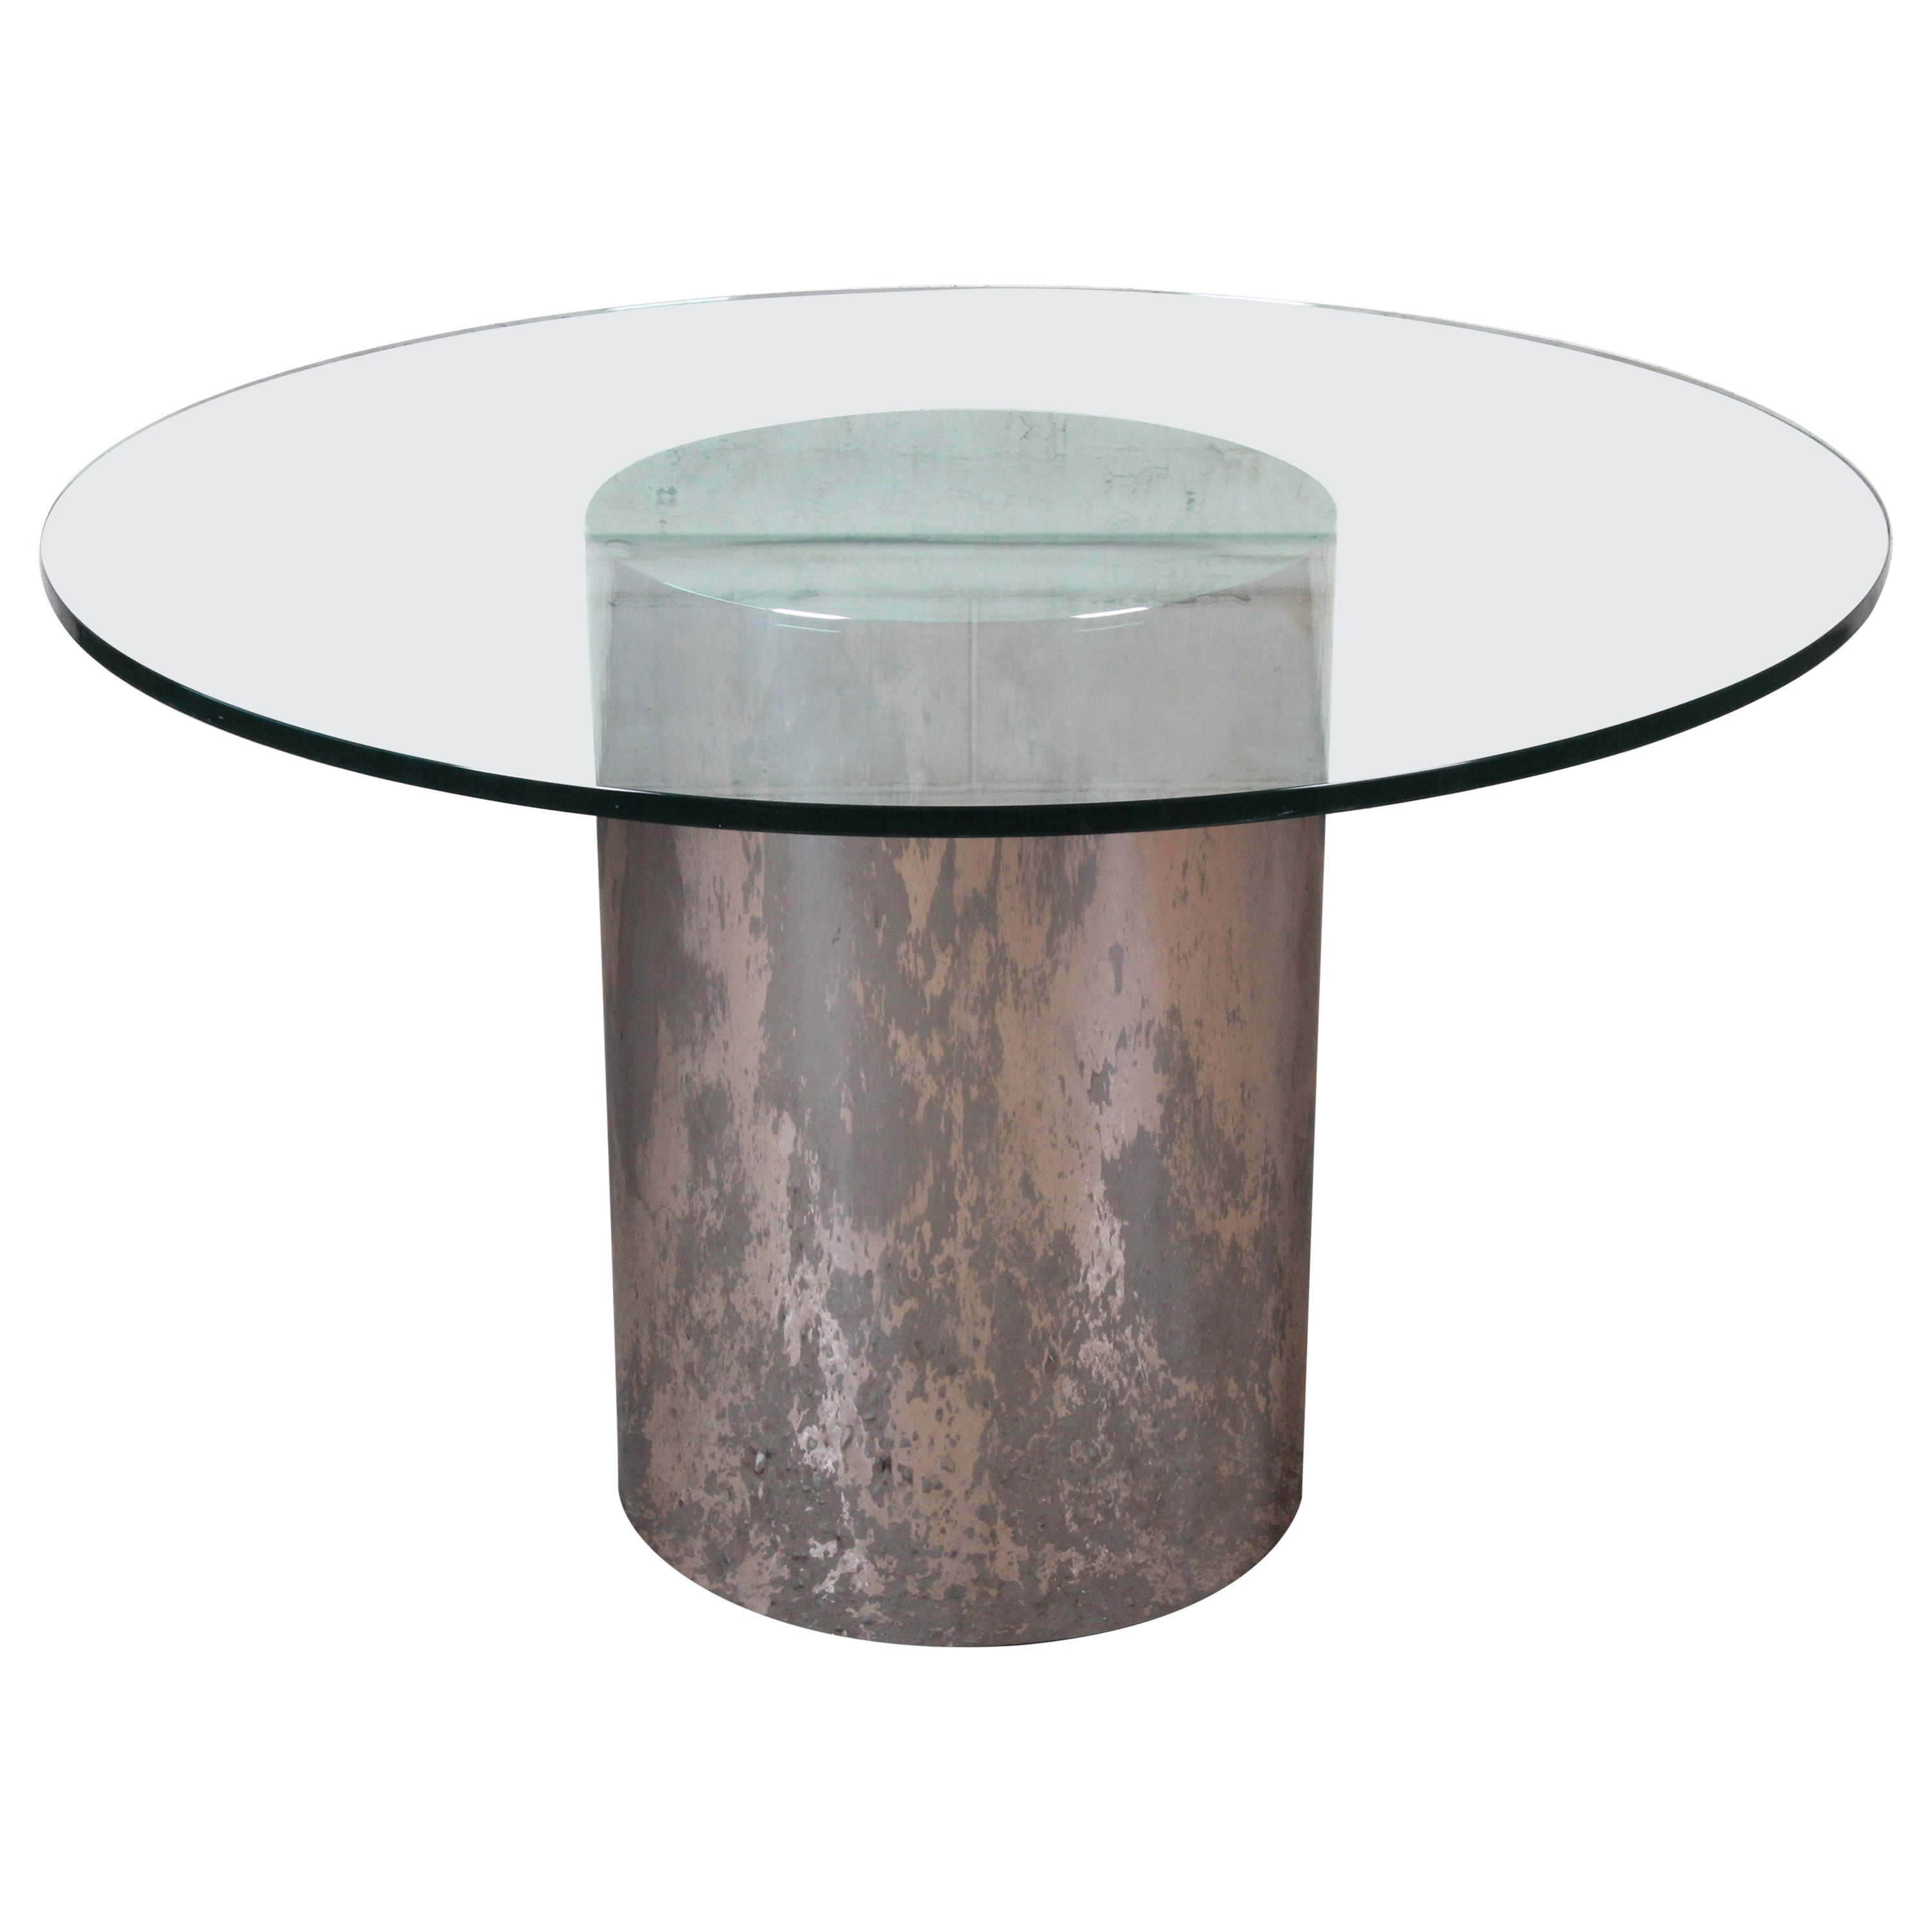 Brueton Mid-Century Modern Polished Steel and Glass Round Pedestal Dining Table